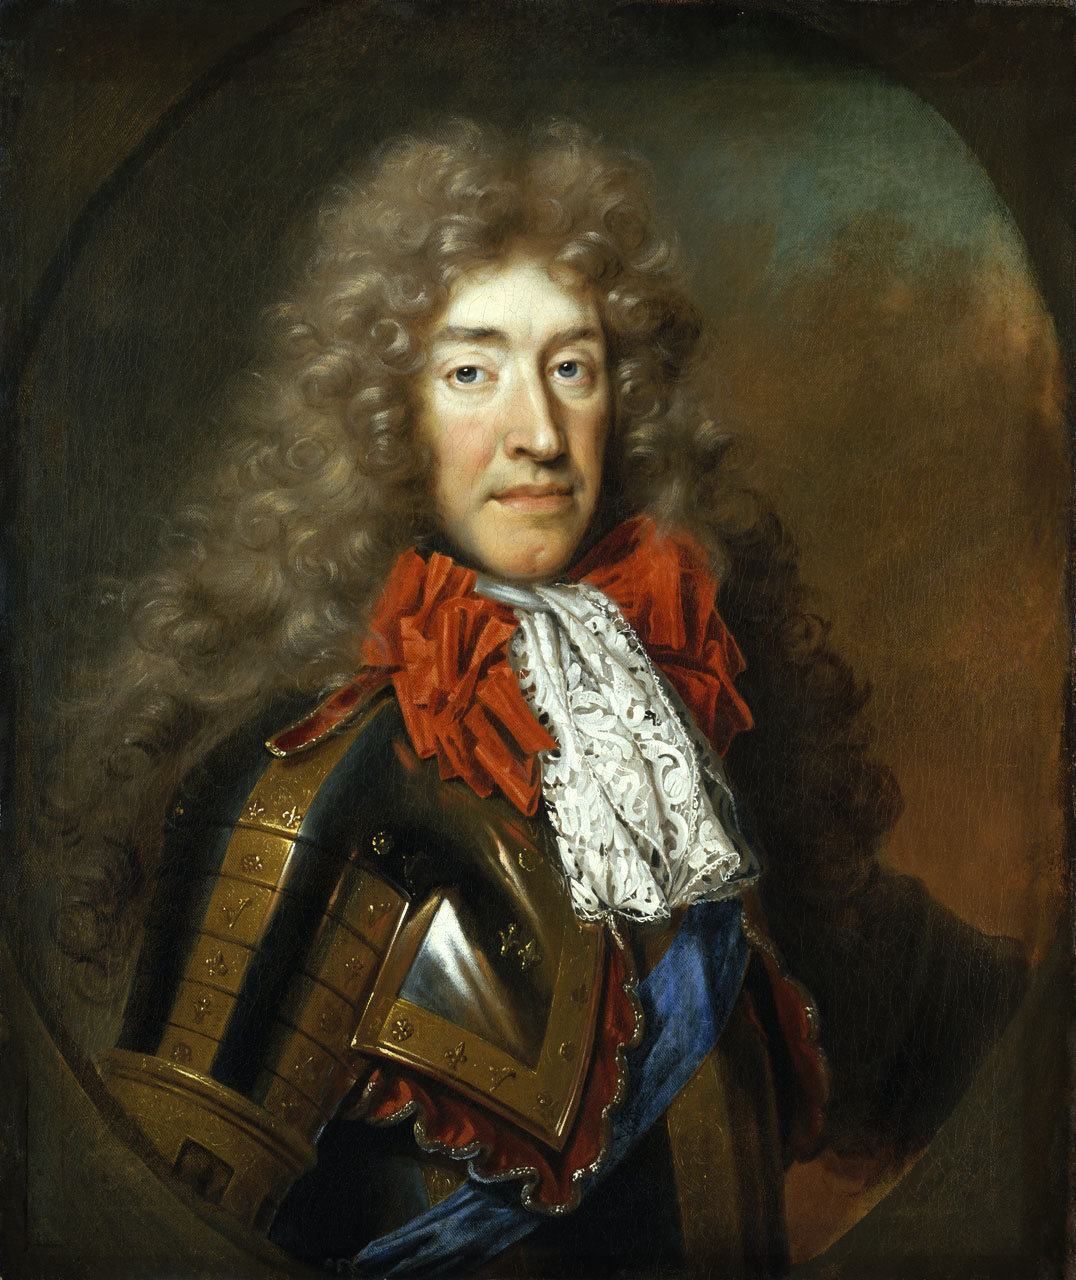 James II of England (1633-1701). This is the man whom Richard Nagle followed to St Germain en Laye near Paris where he became Secretary of State and War